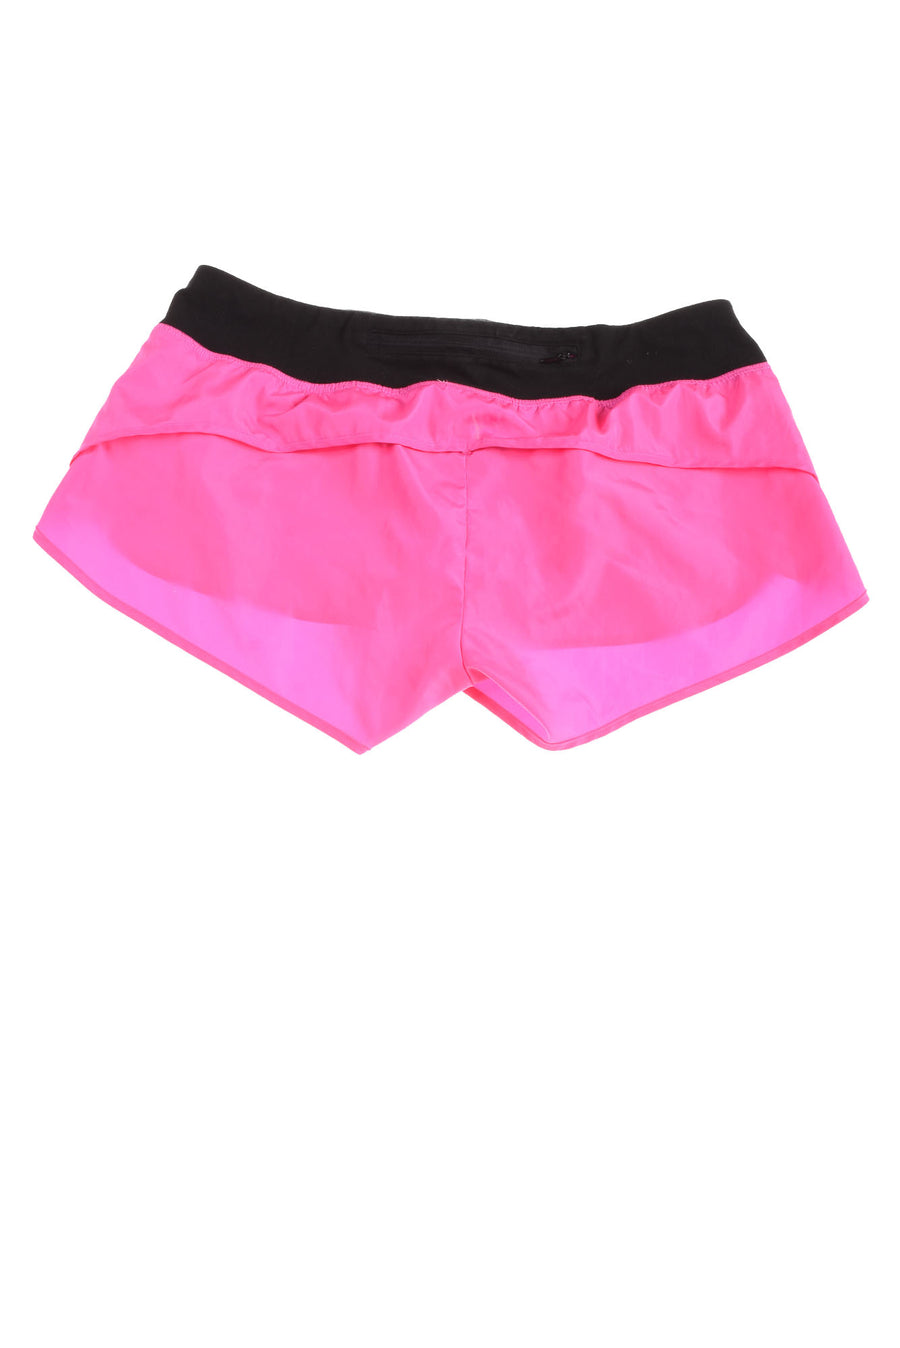 USED Pink By Victoria's Secret Women's Shorts Small Pink & Black